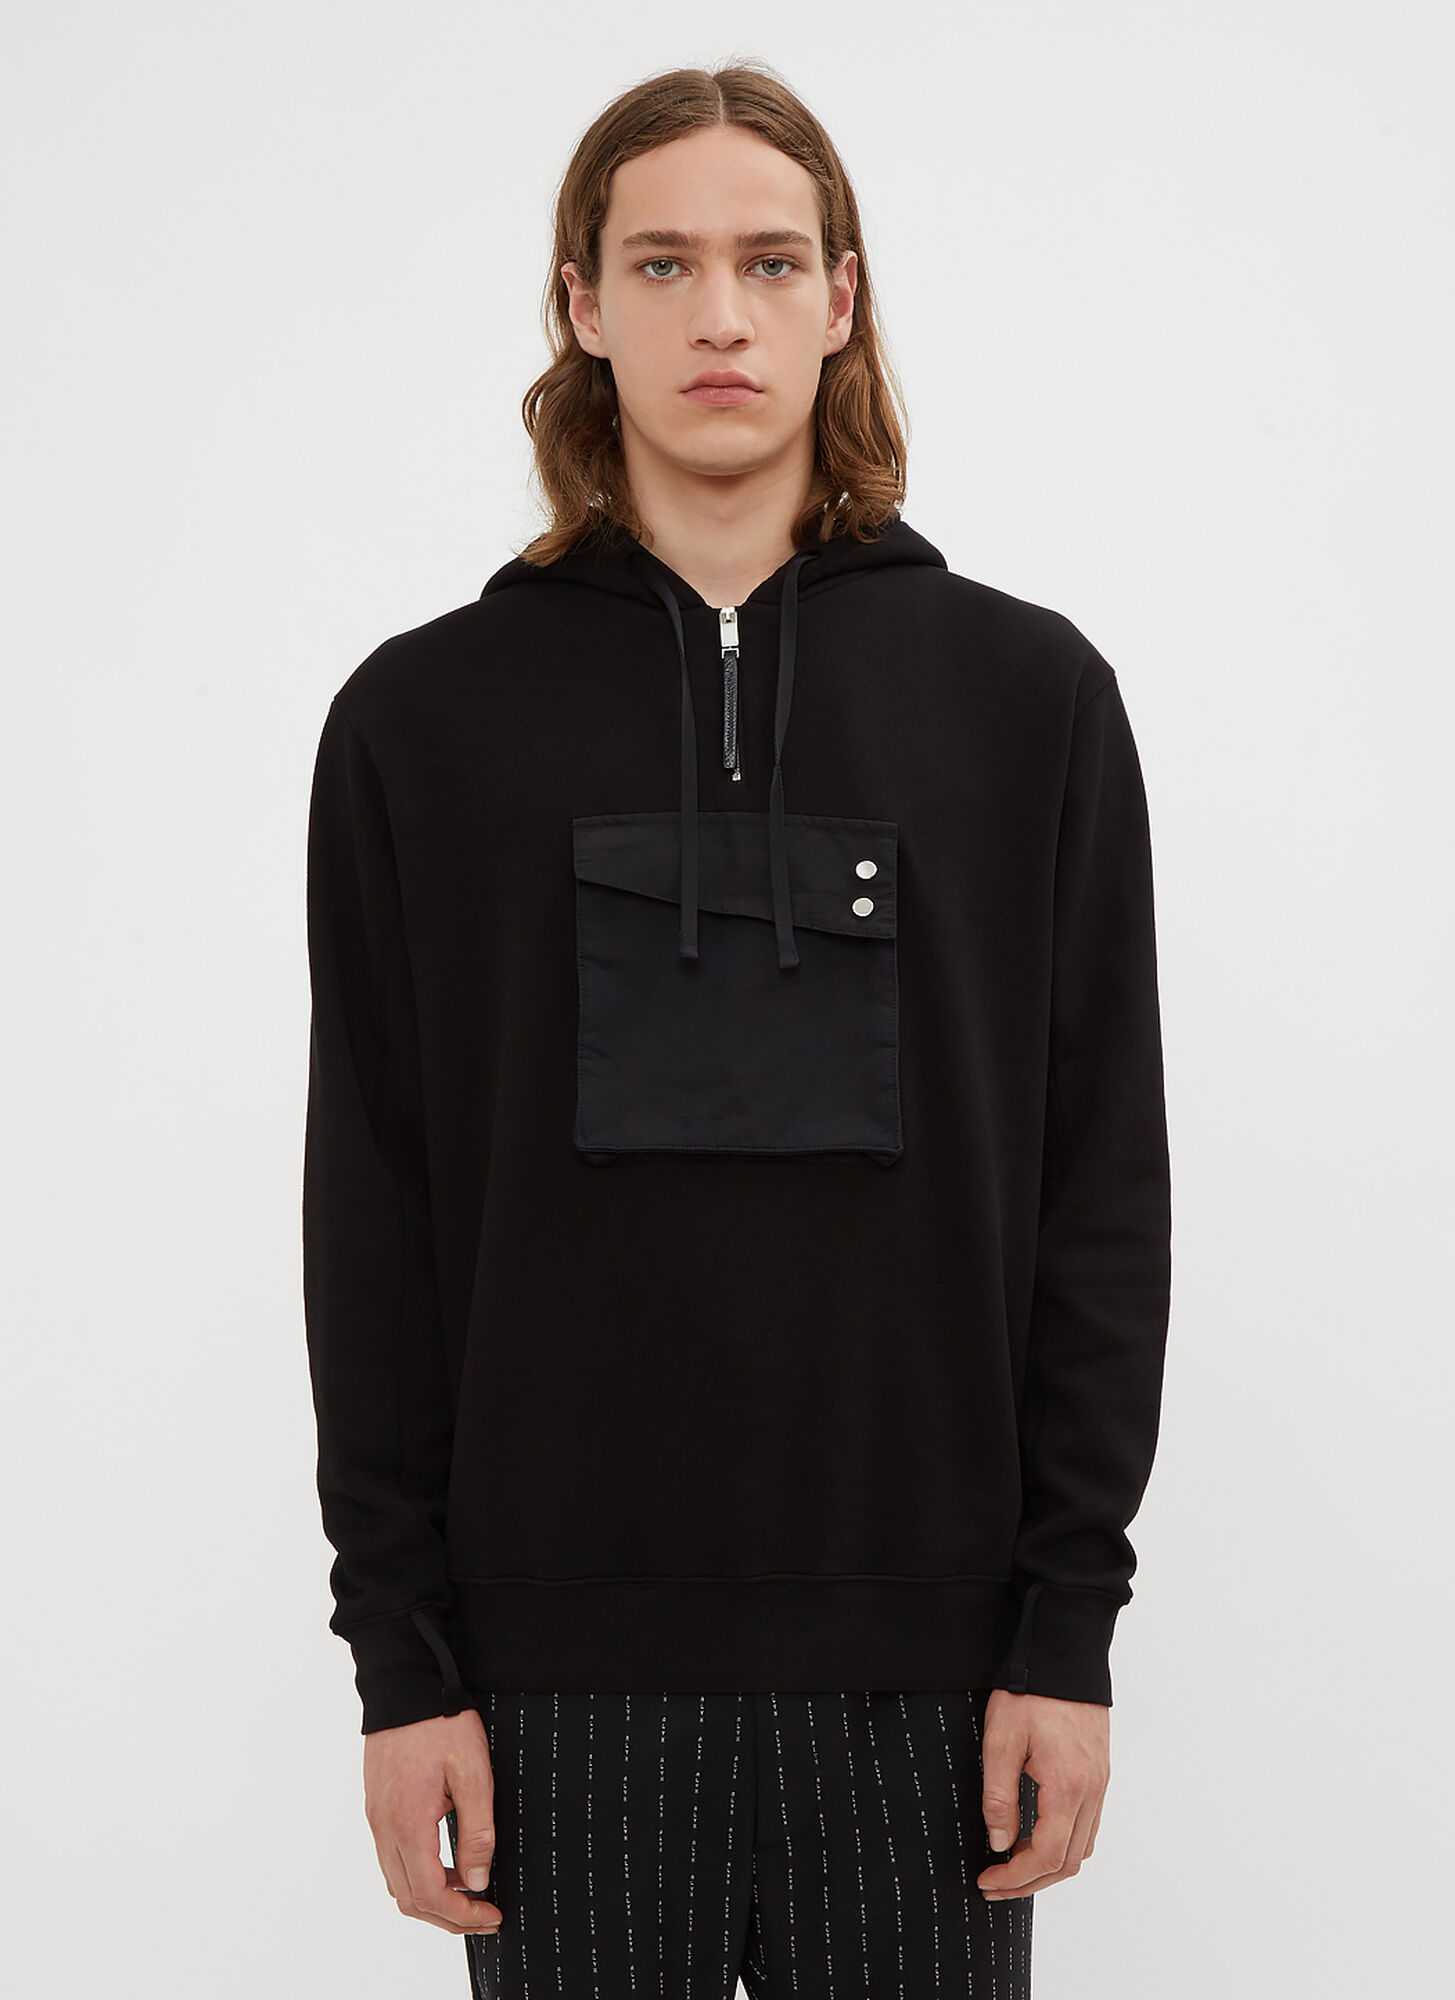 1017 ALYX 9SM Hooded Cargo Pocket Sweater in Black size M